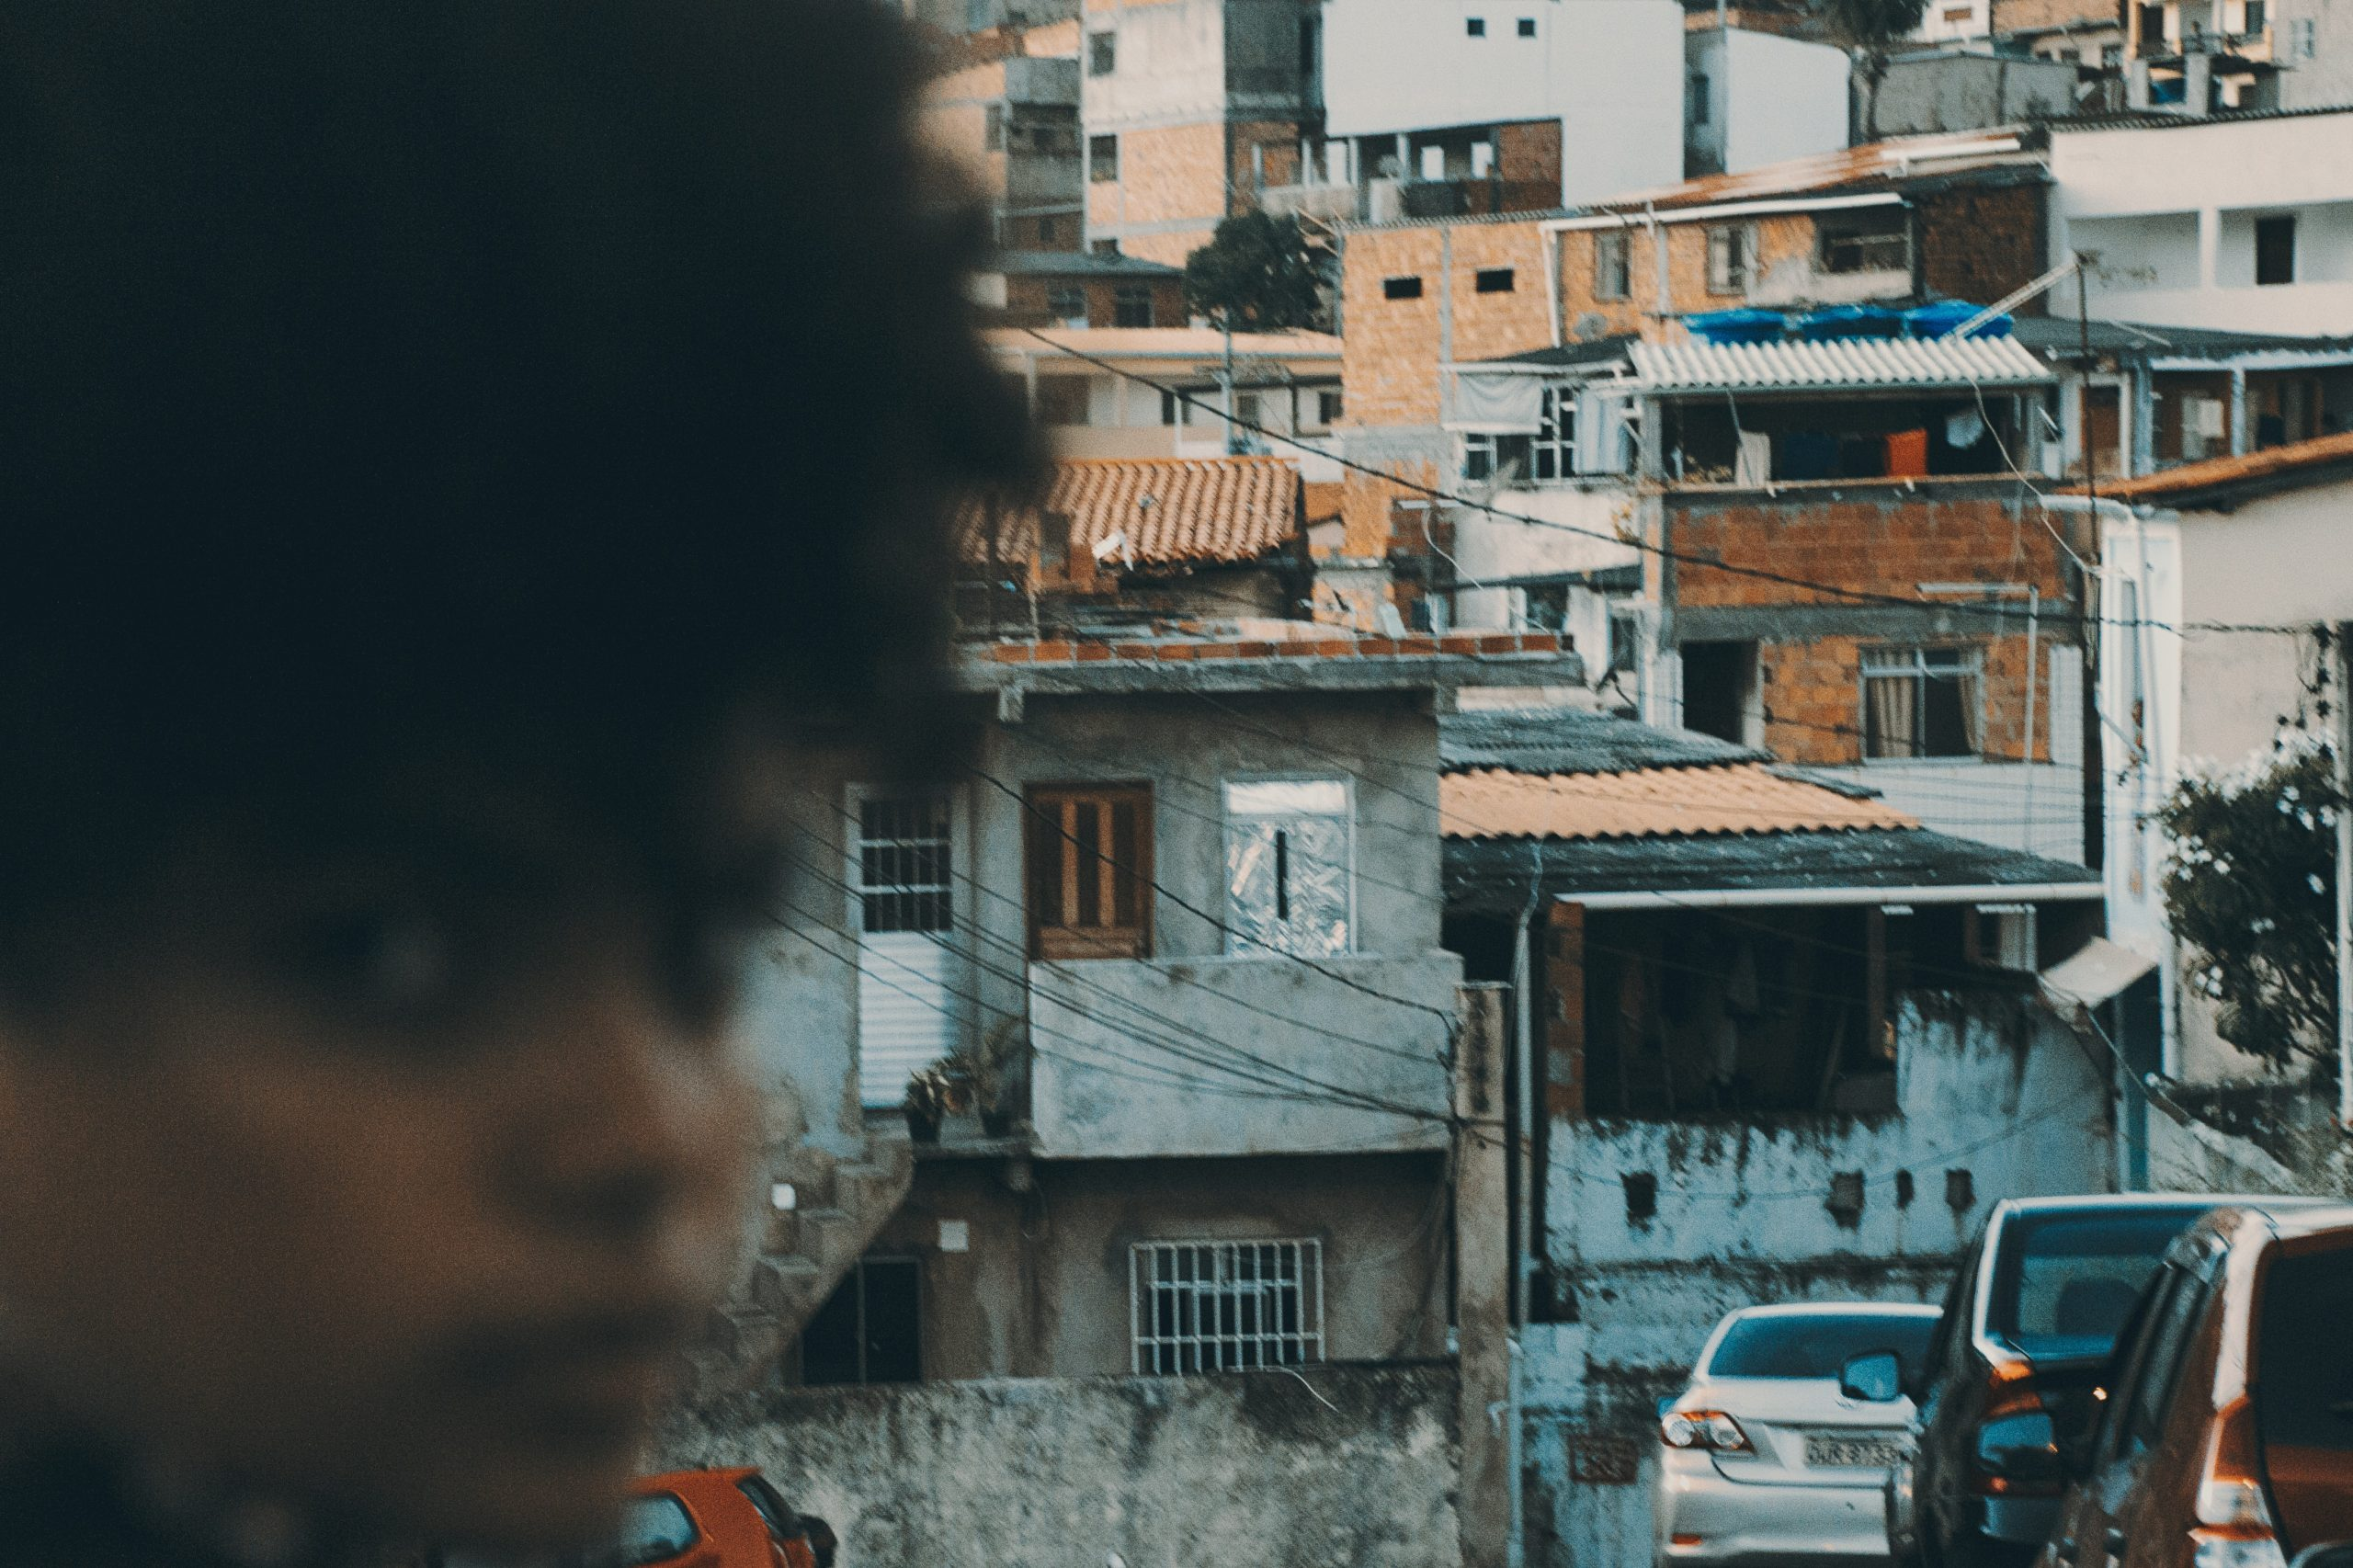 Gender and COVID-19 in Brazil: Social impacts on women's lives